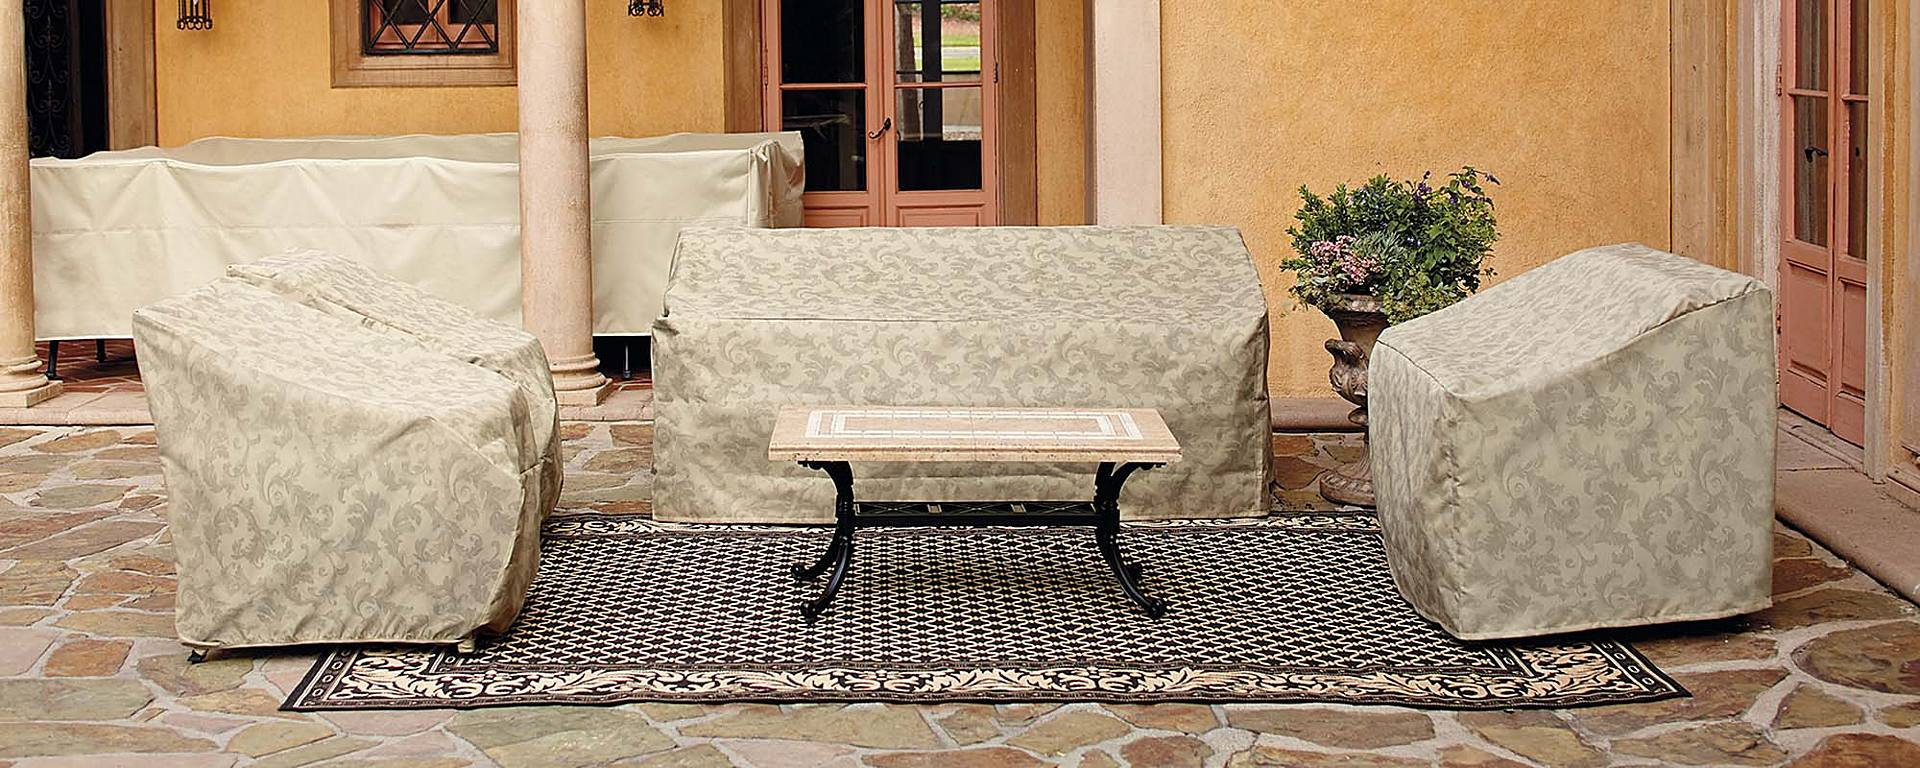 covers loveseat cupboard patio cover outdoor brookstone furniture veranda